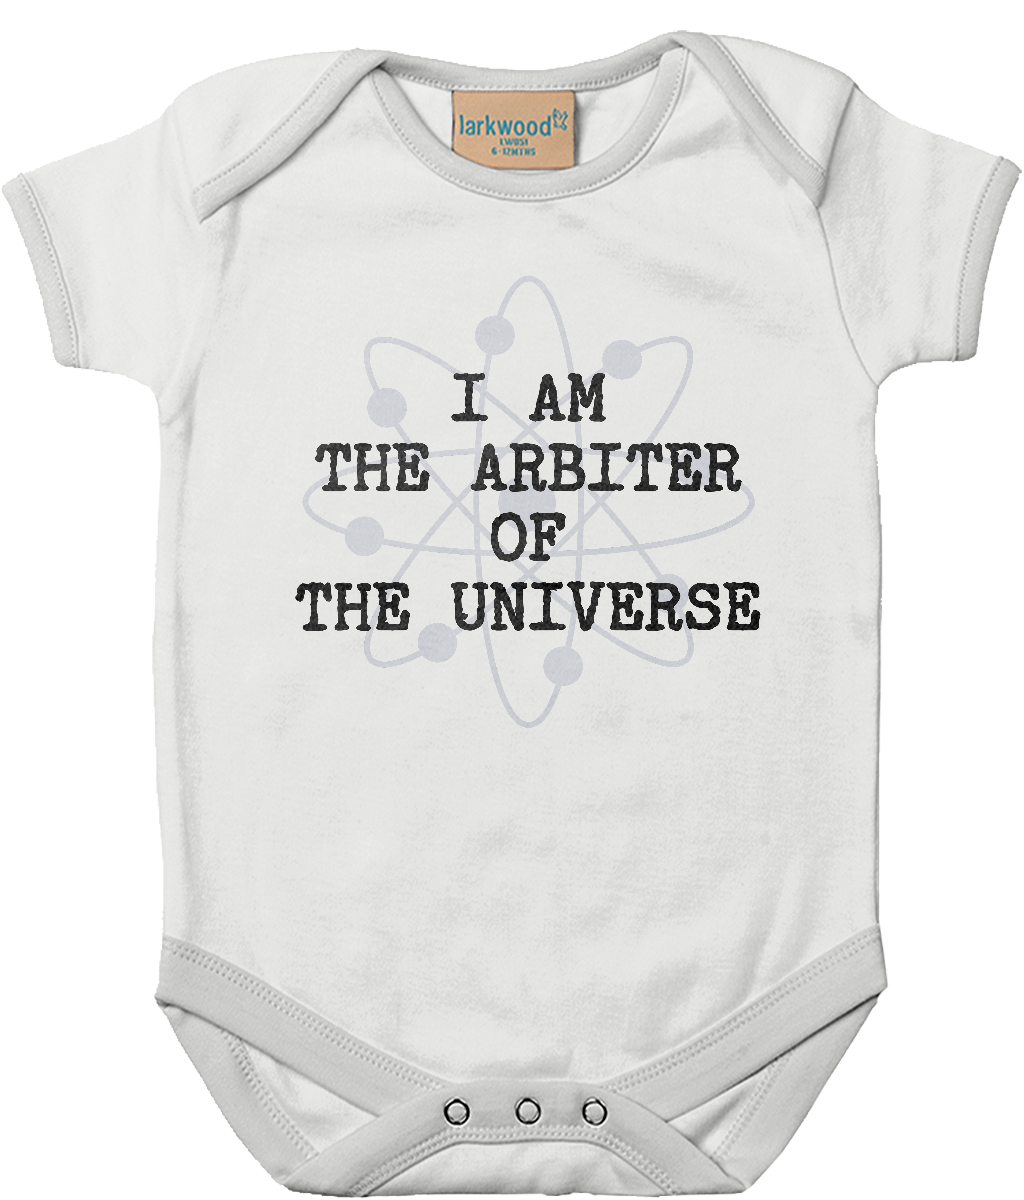 I Am The Arbiter Of The Universe - baby bodysuit